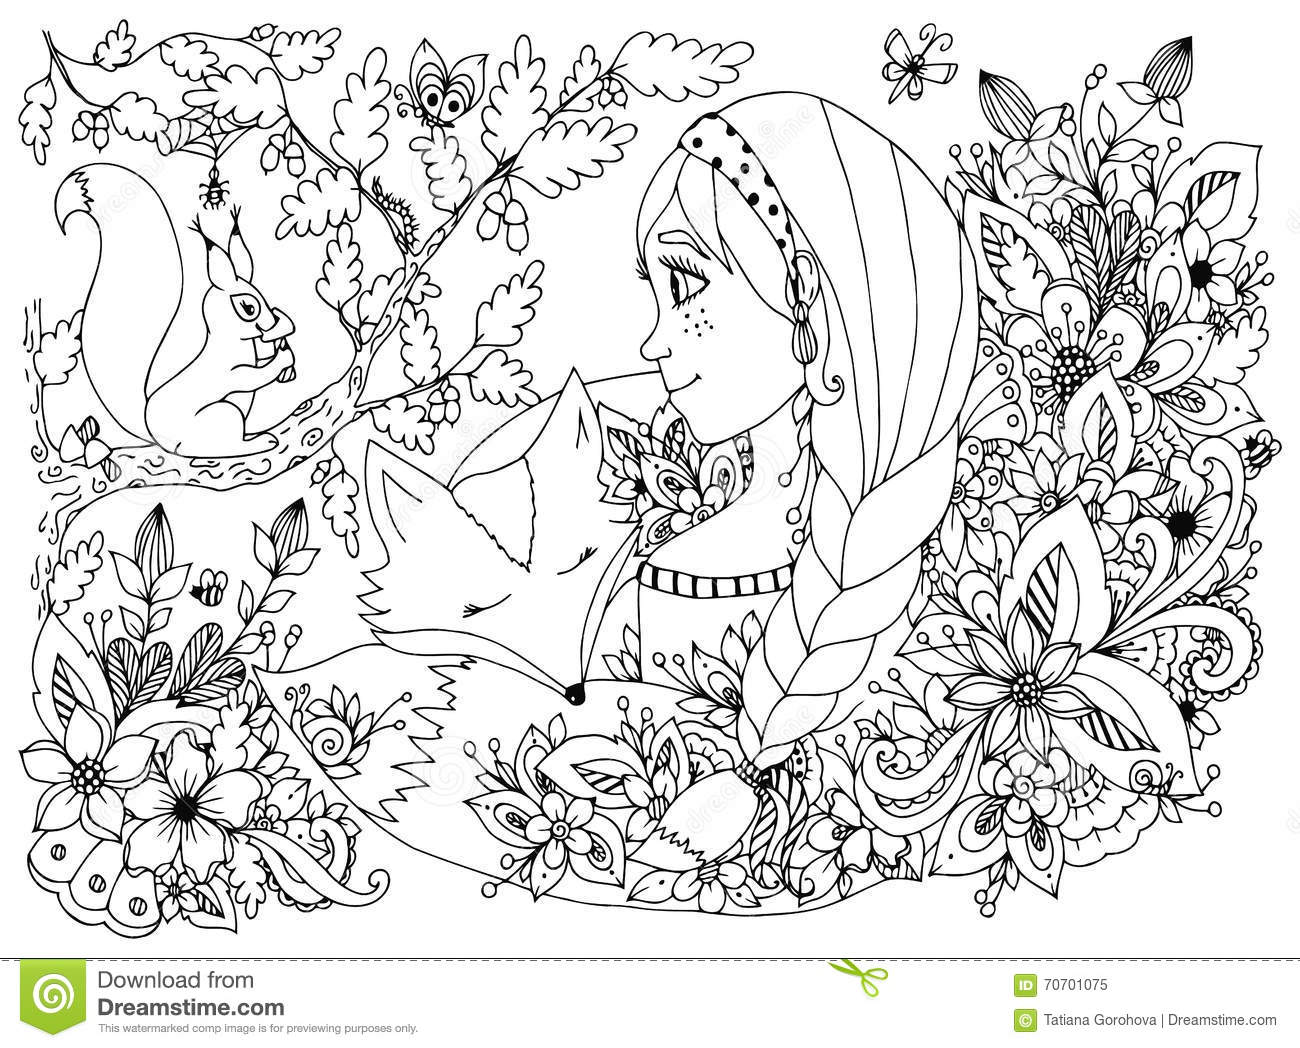 Vector Illustration Zentangl Girl With Freckles Looking At